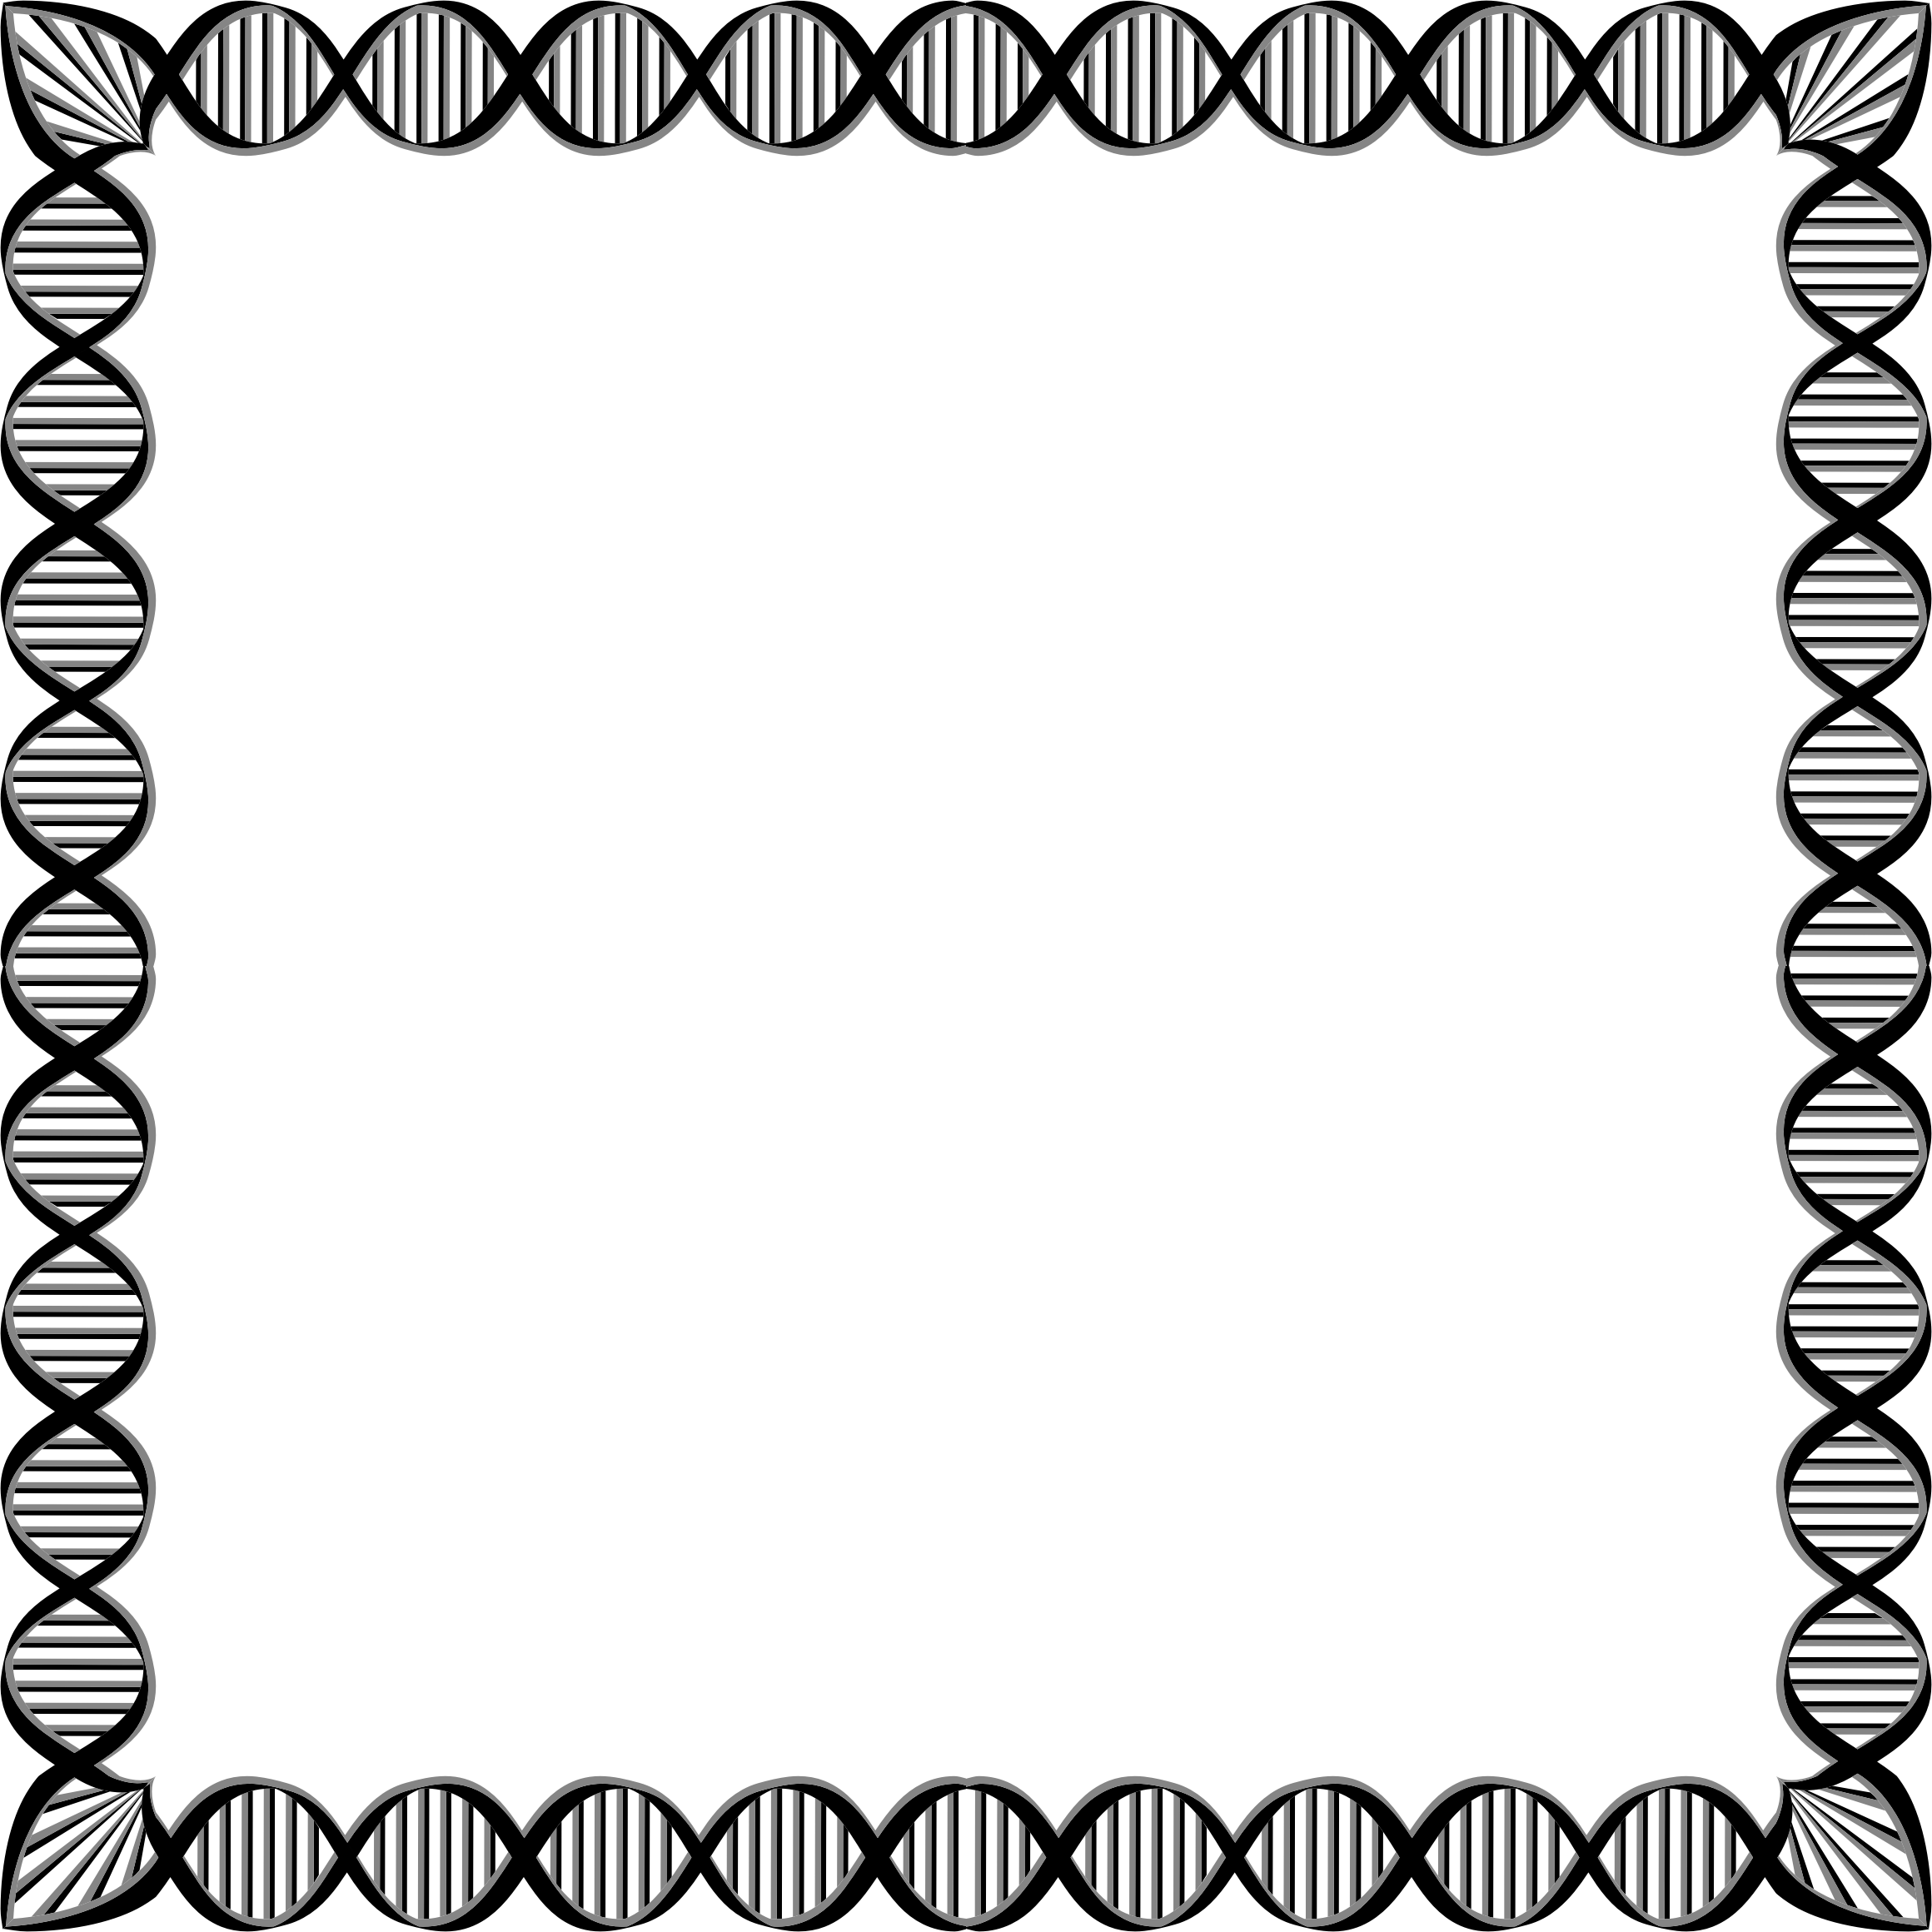 Dna square big image. Chemistry clipart borders